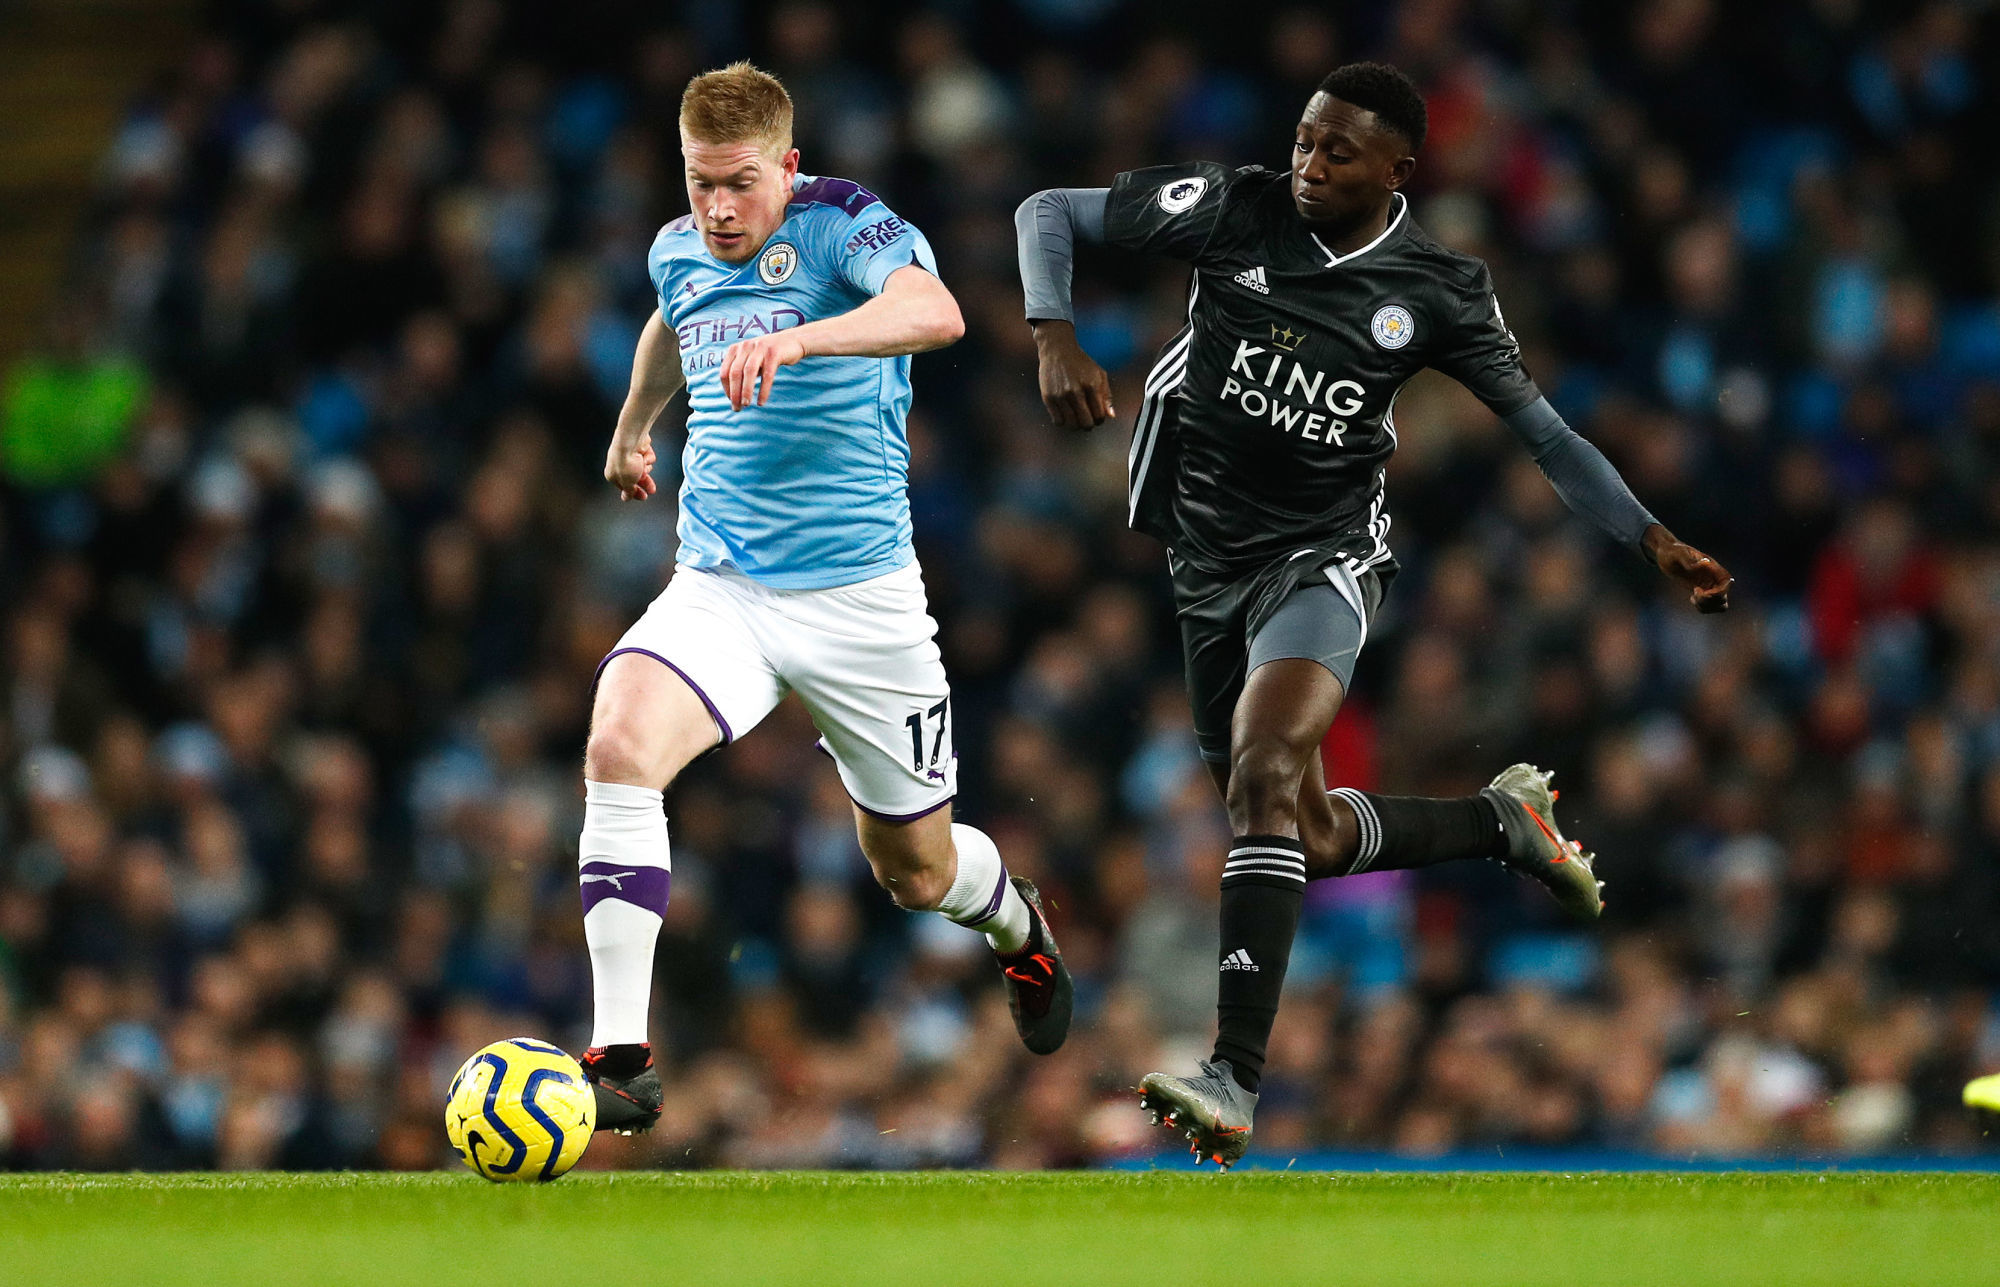 Premier League J26 : Man City - West Ham en direct - Sport.fr